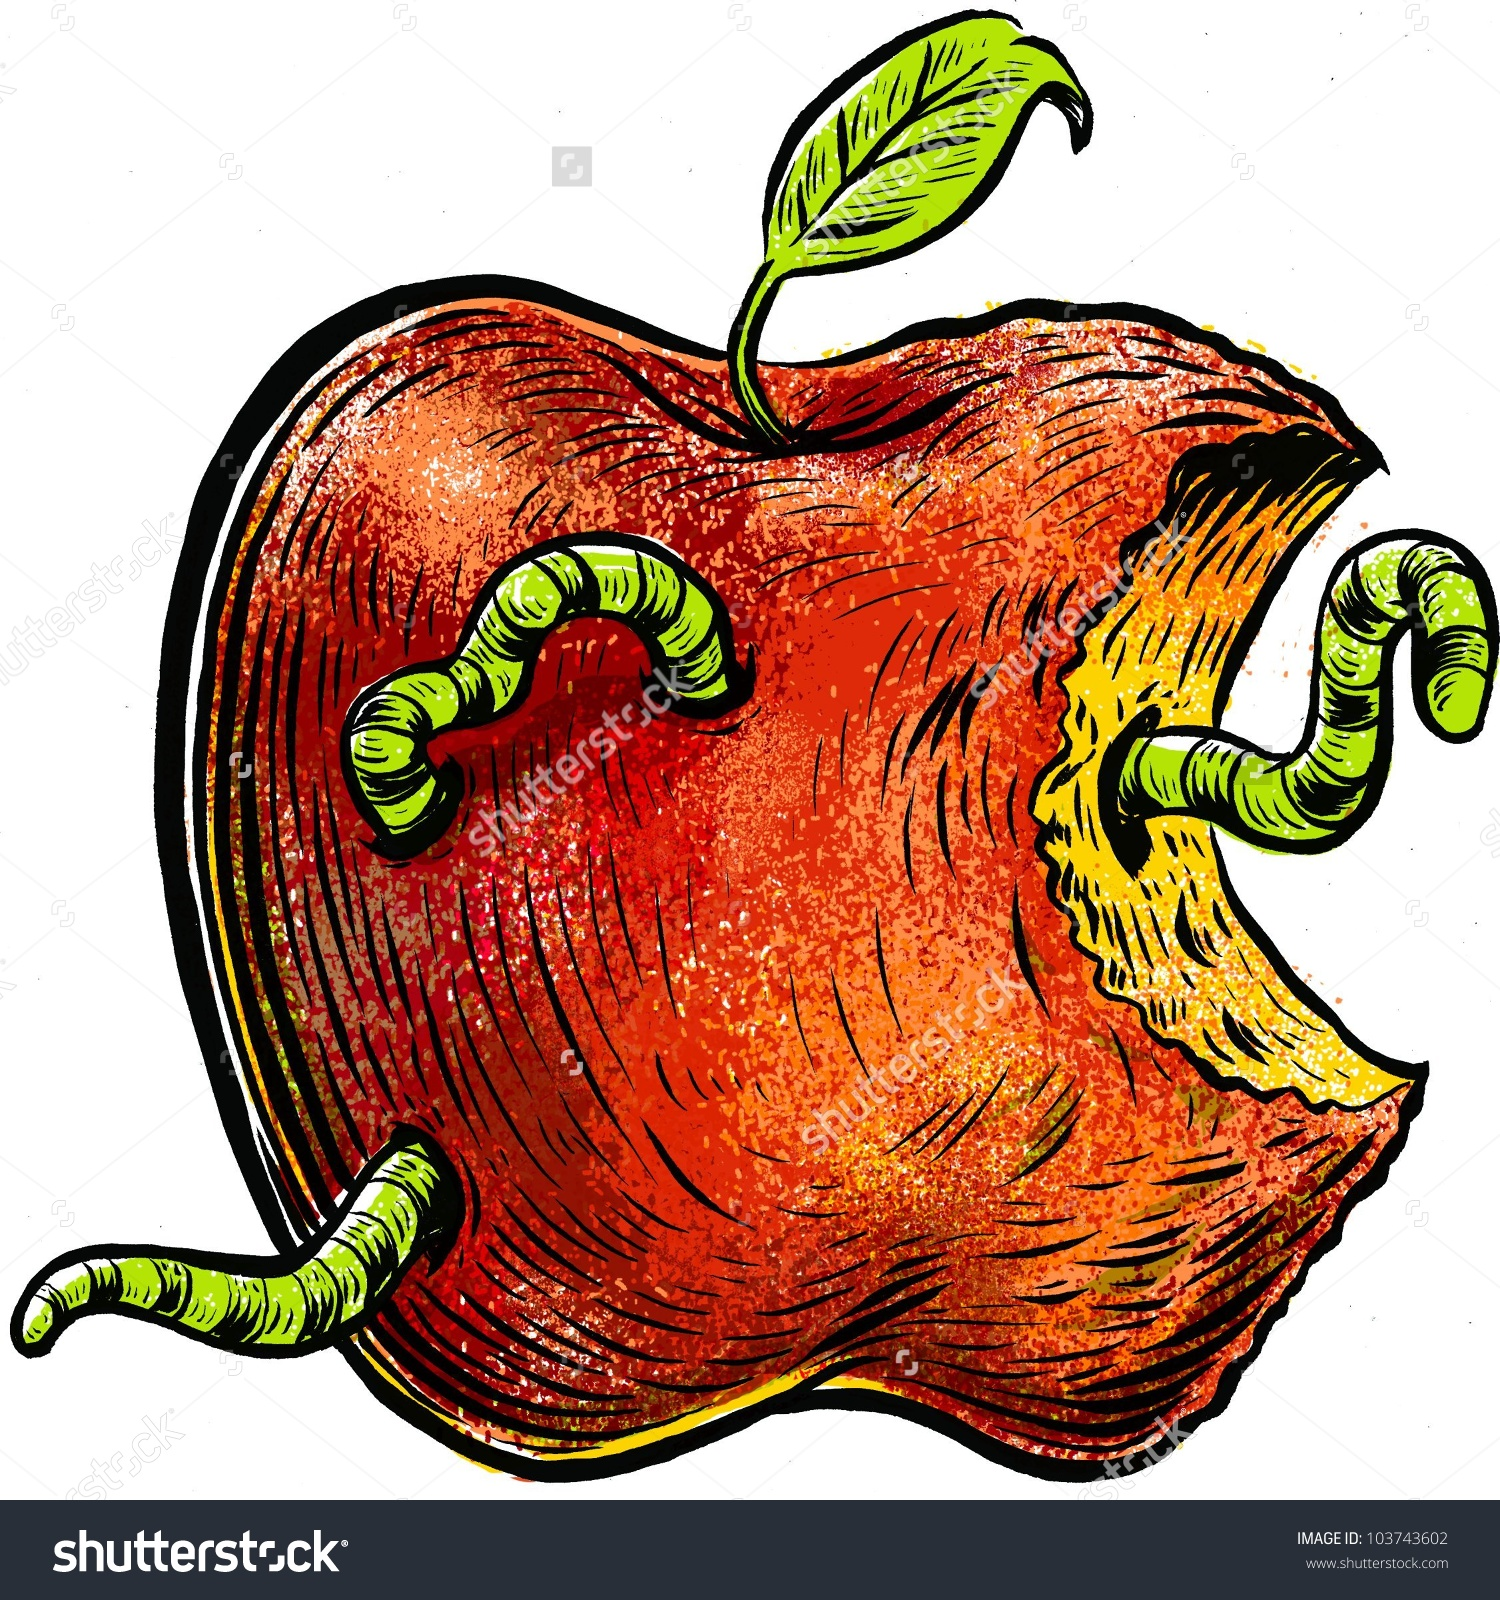 Apple orchard clipart rotten apple. Clipartfest preview save